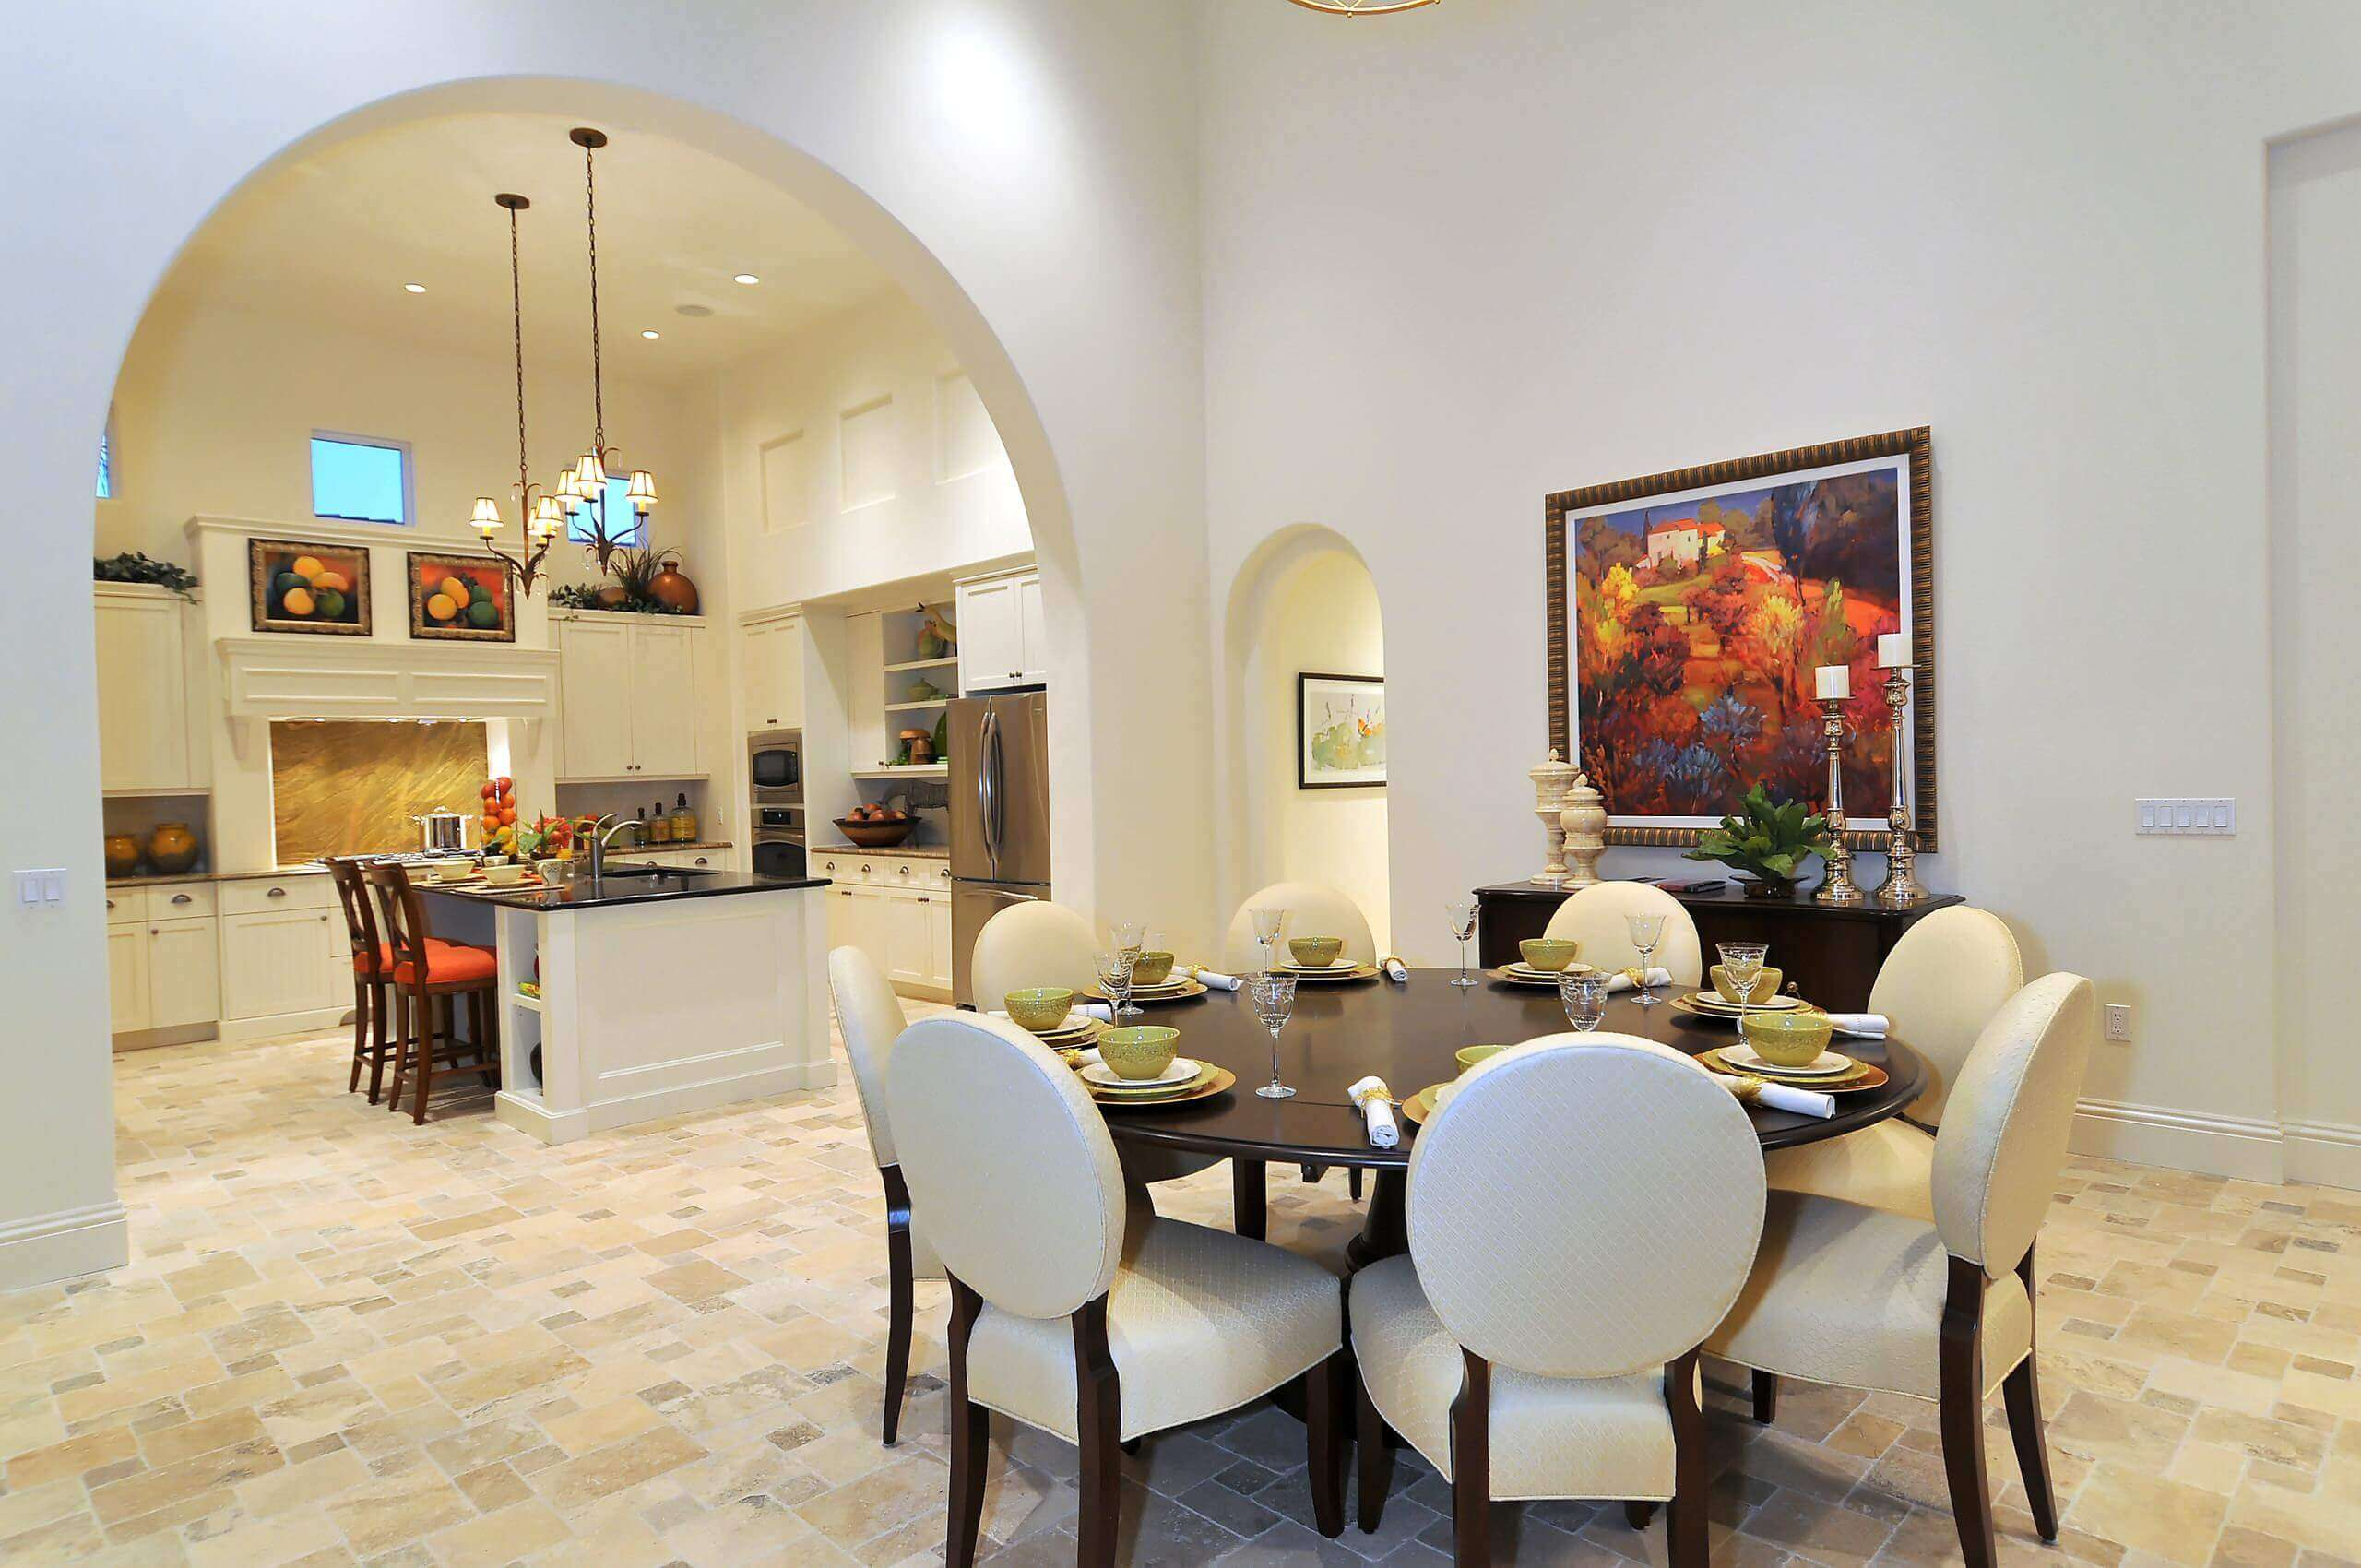 Contemporary Round Kitchen Table and Chairs